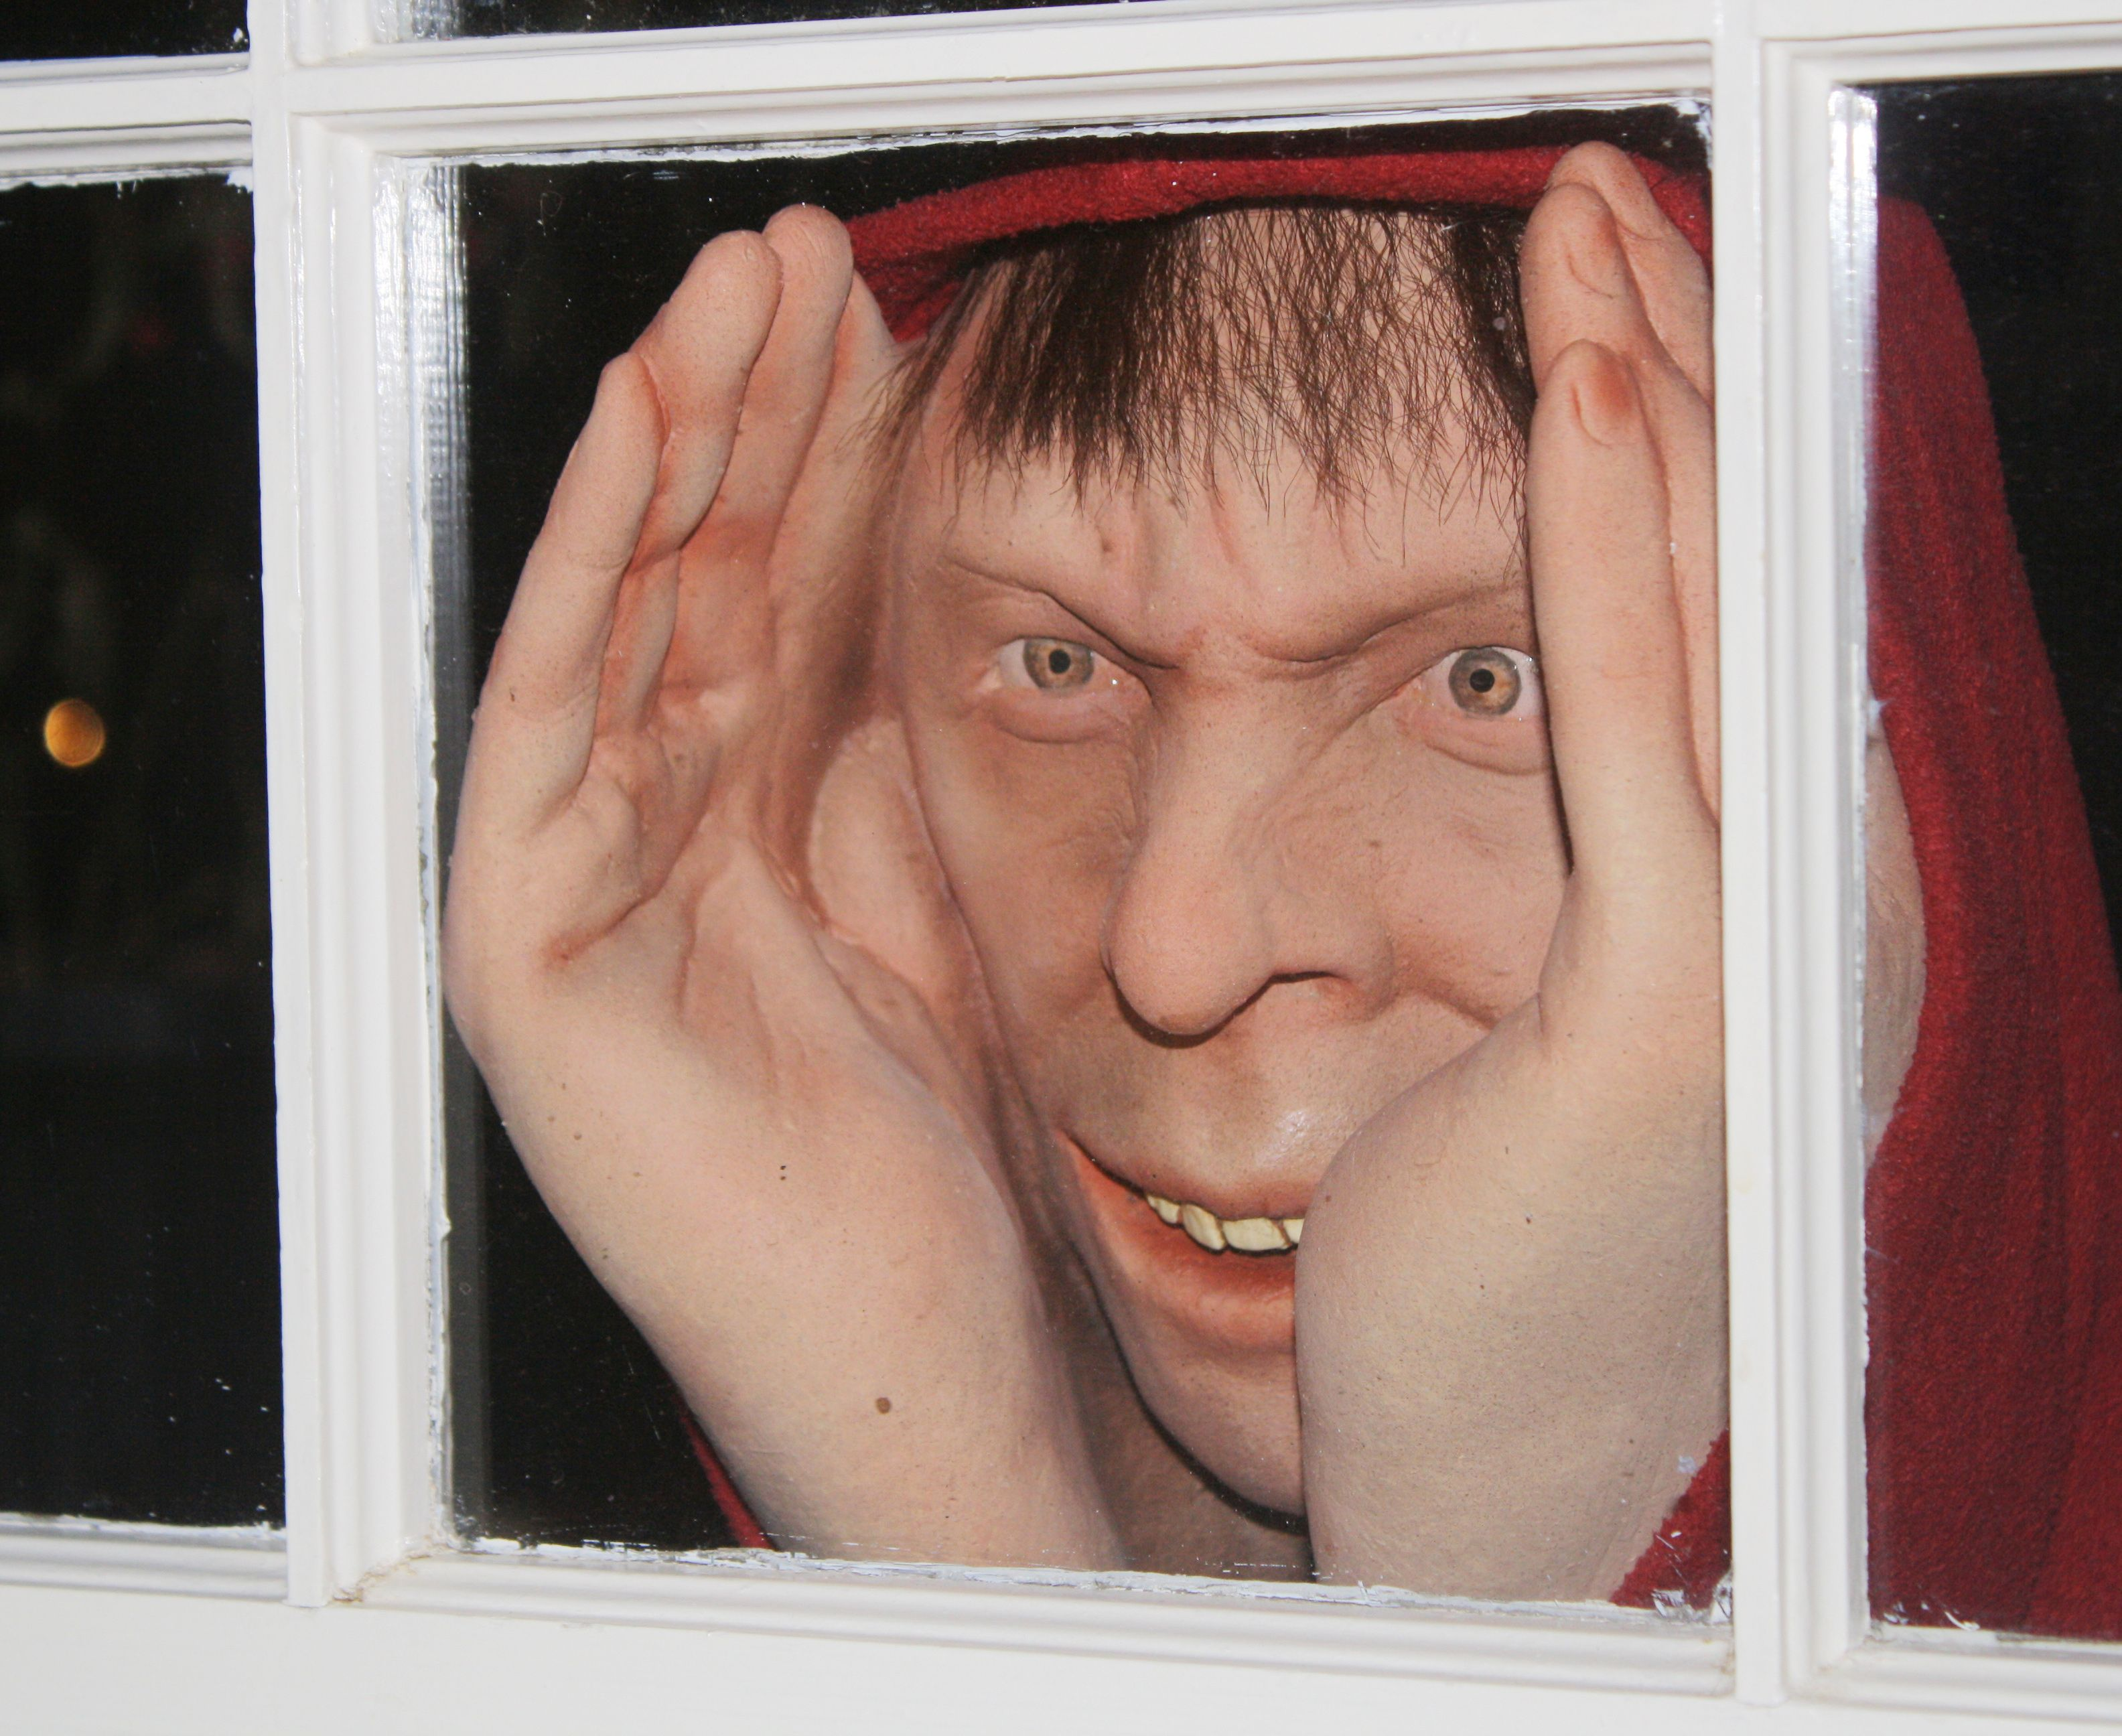 the scary peeper deluxe is the ultimate halloween prank. screams